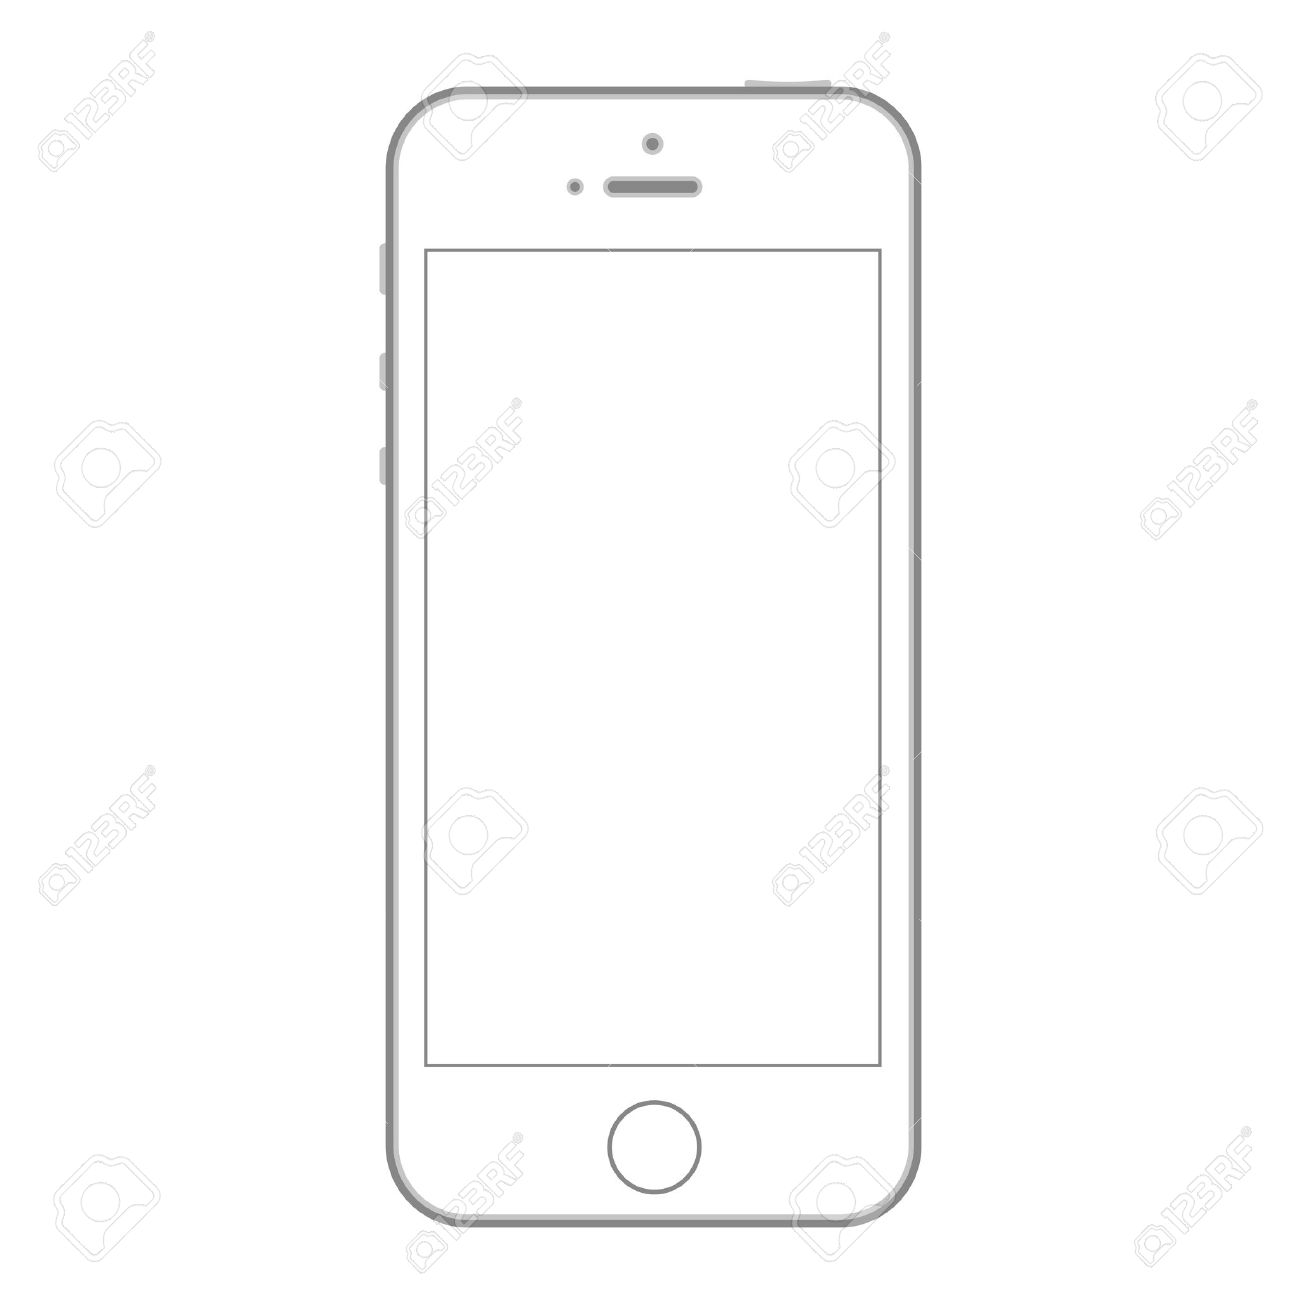 Mobile Phone Mockup Design Template Outline Shape Royalty Free ...